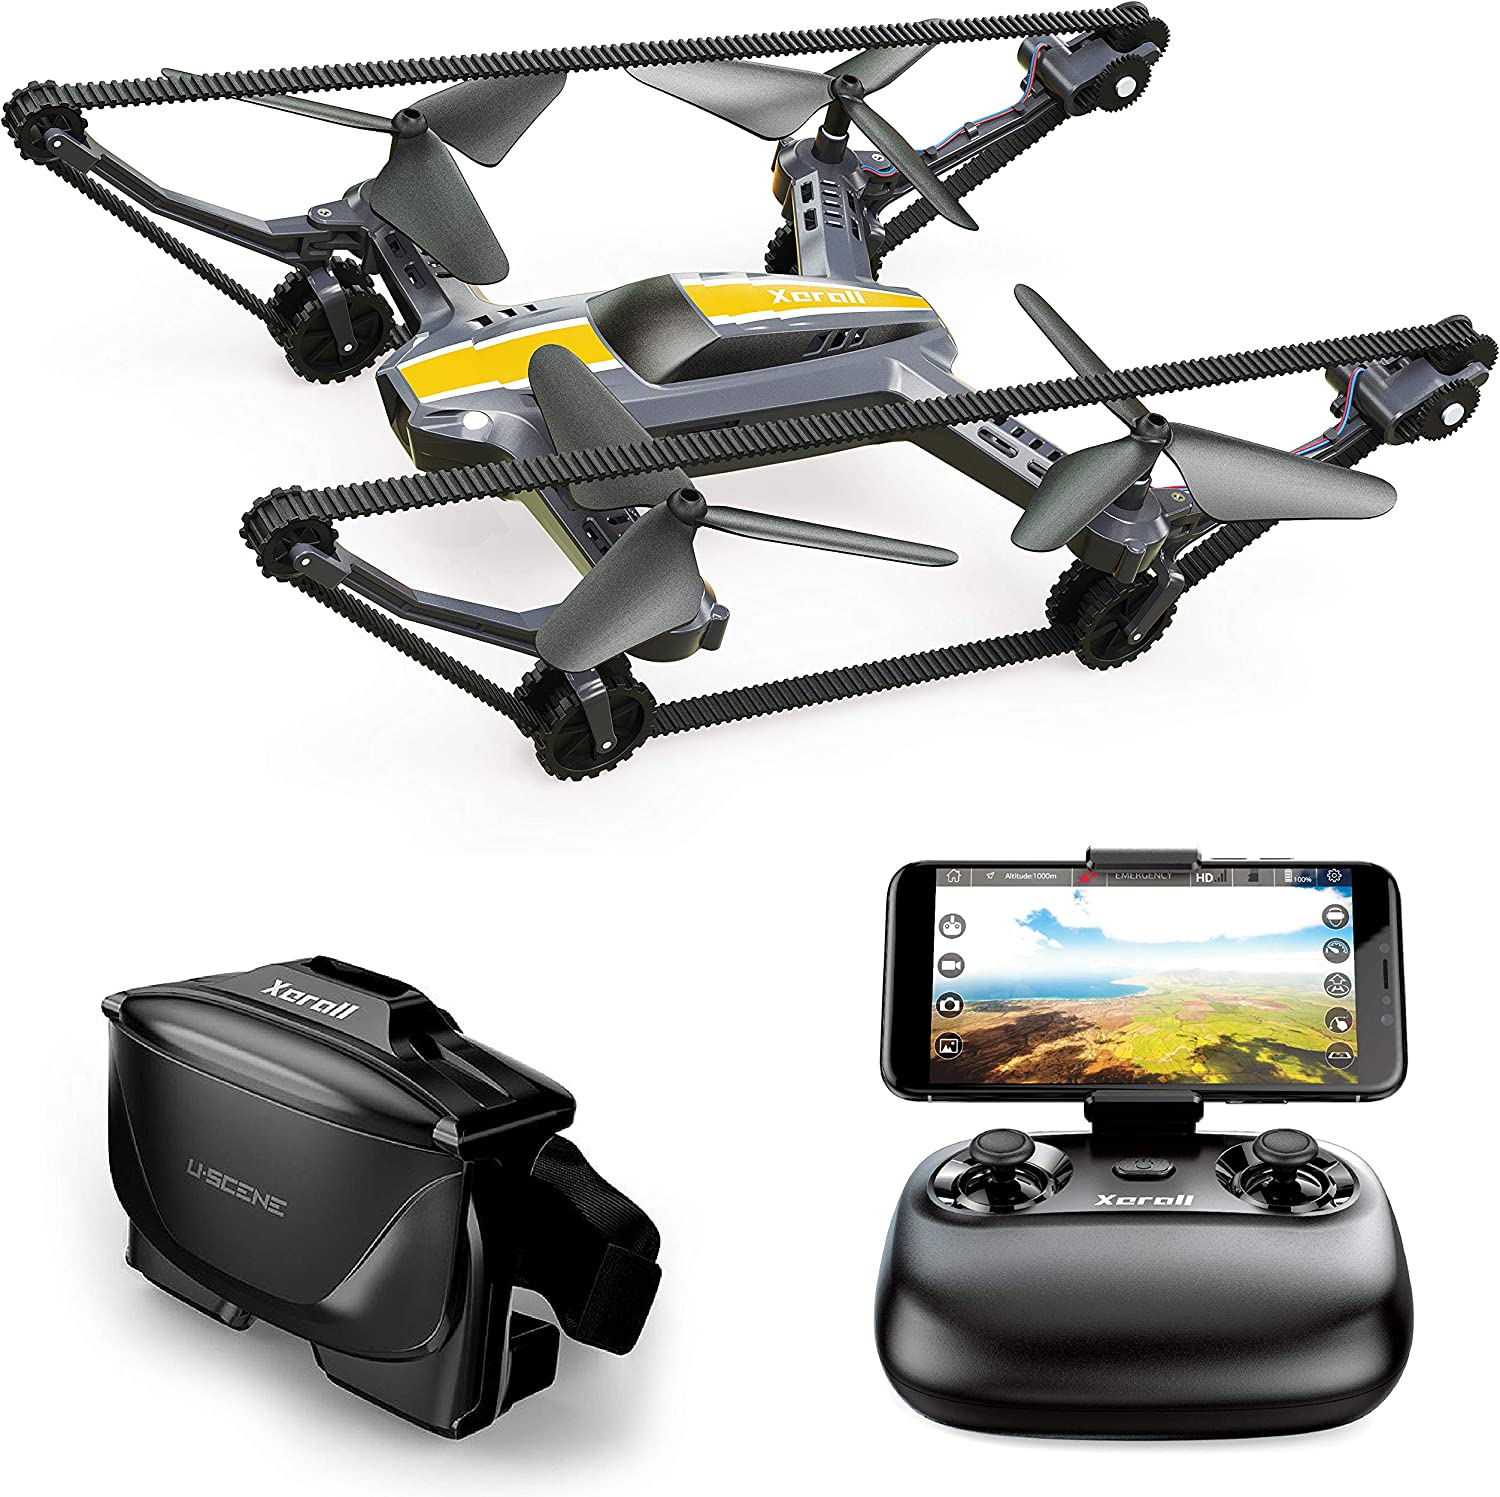 Xerall X-TANKCOPTER Hybrid Quadcopter-Tank Drone, HD Camera, Smartphone App, VR Goggles FPV, 2.4GHz…